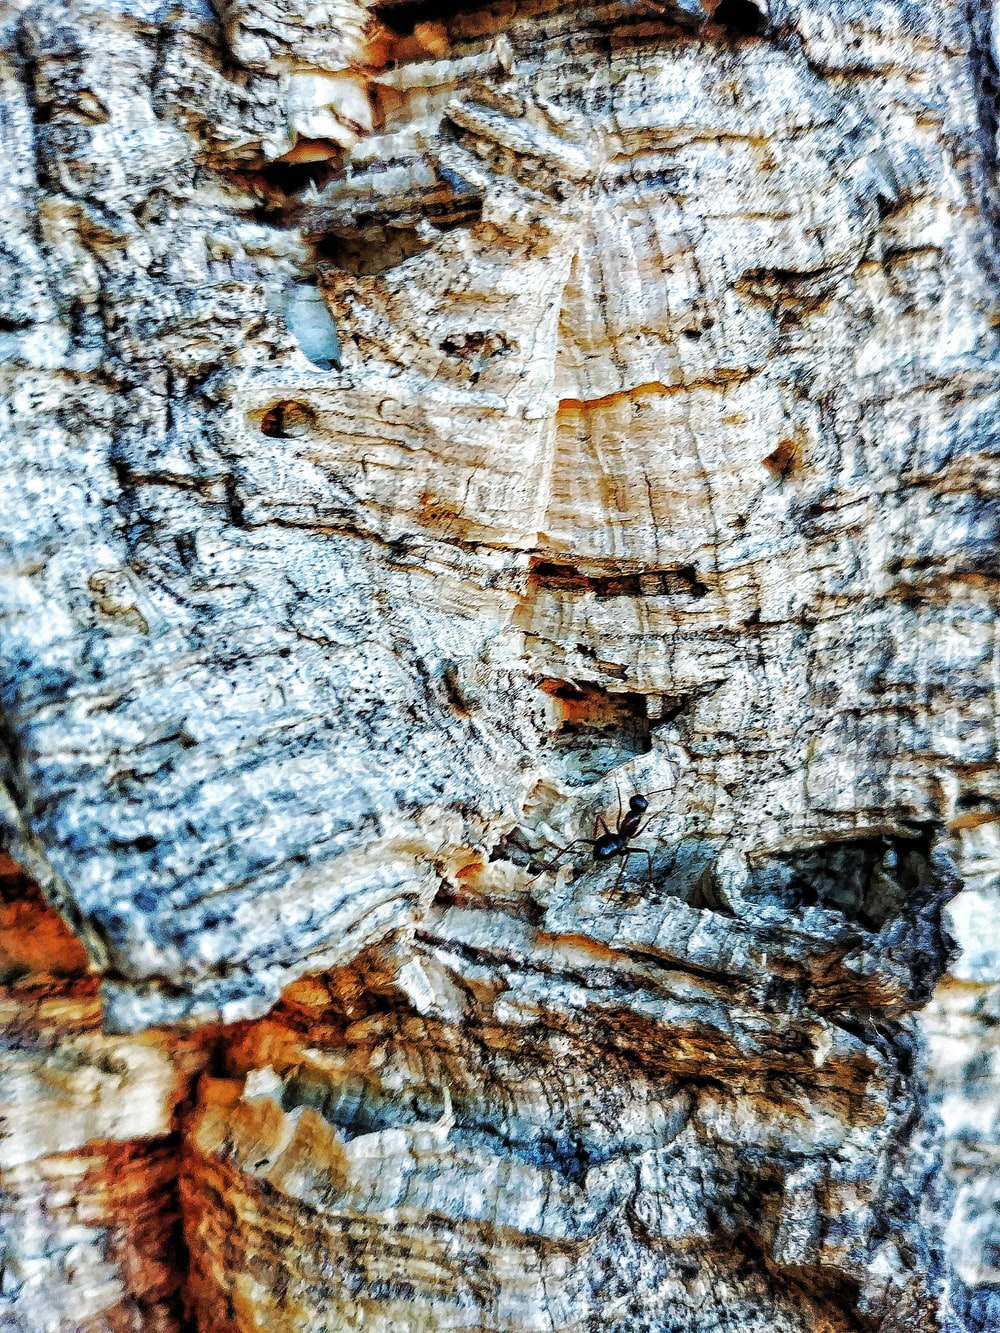 brown and gray rock